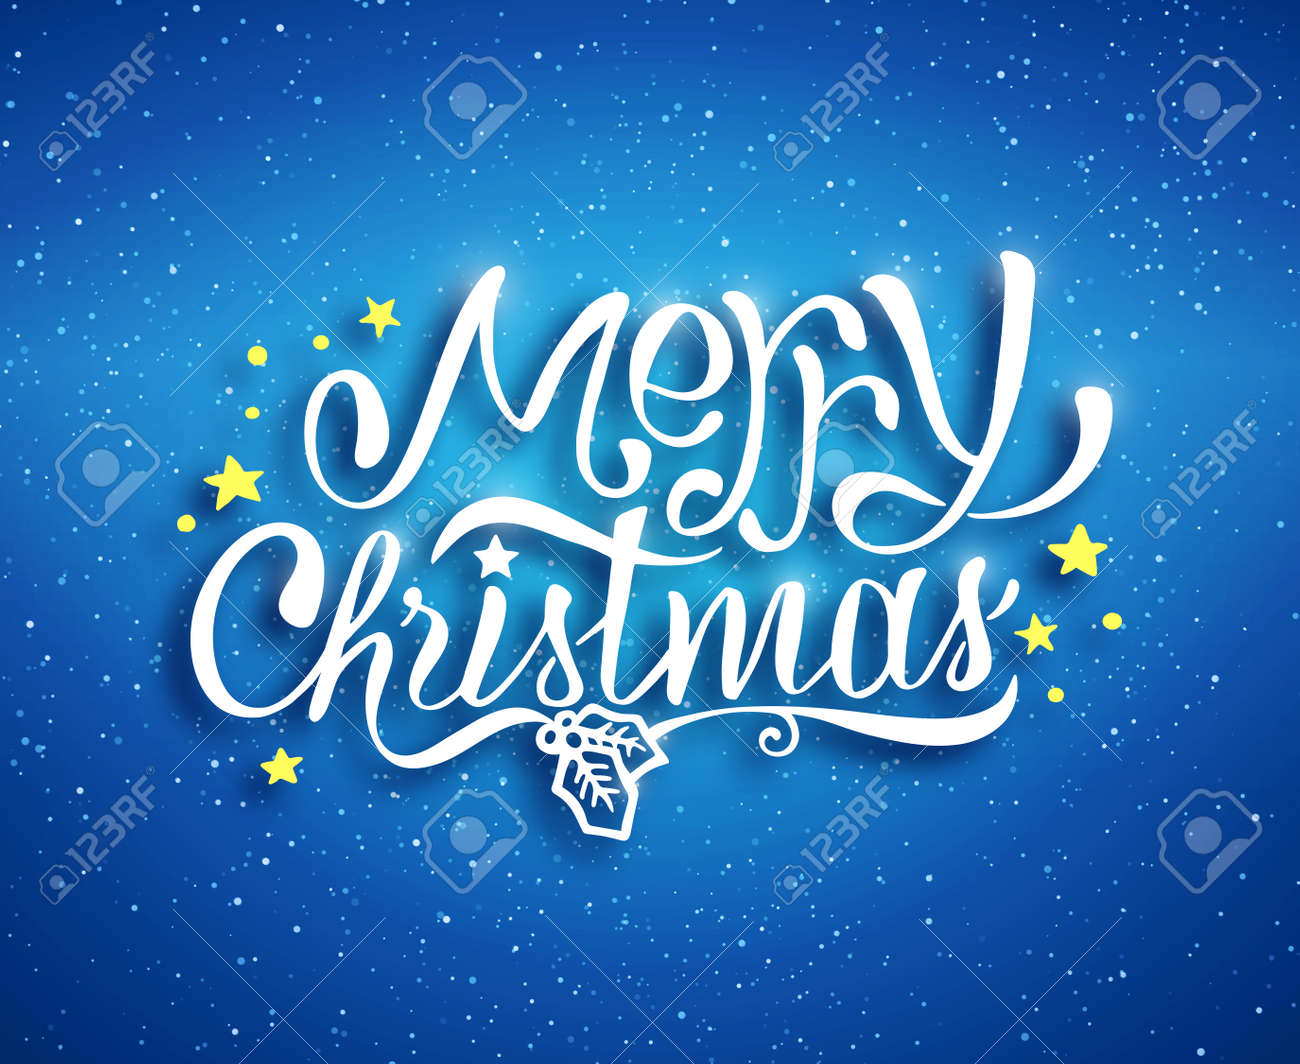 Merry christmas text lettering for greeting card prints and merry christmas text lettering for greeting card prints and web banner blue blurred background kristyandbryce Image collections